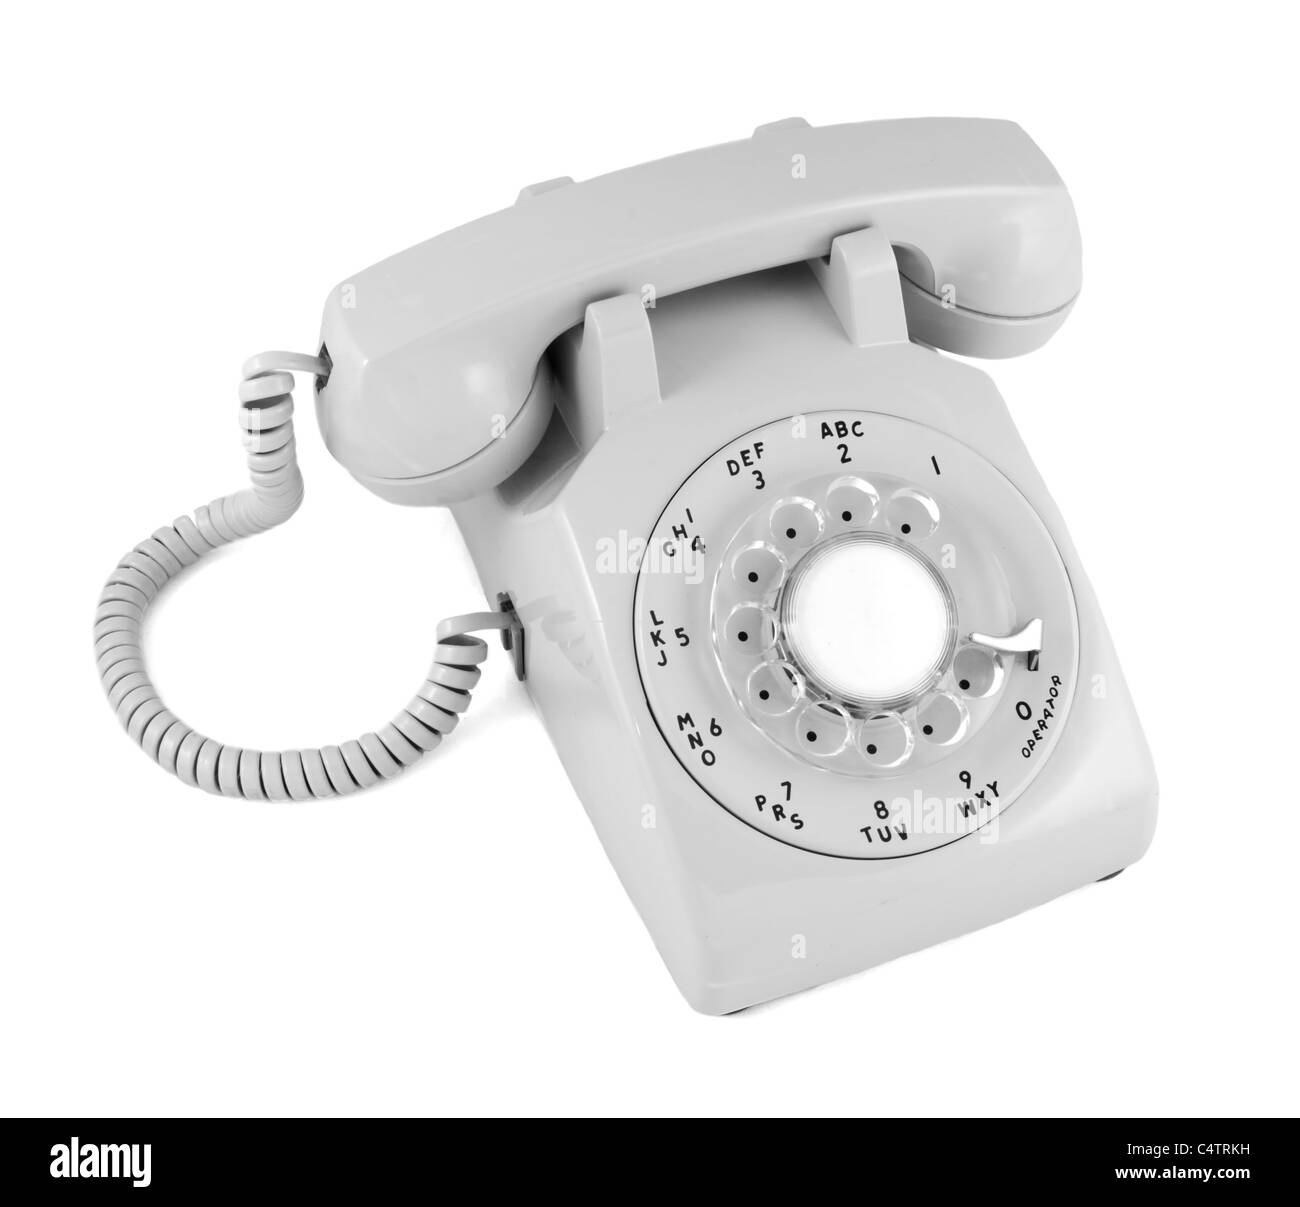 rotary dial desk telephone - Stock Image